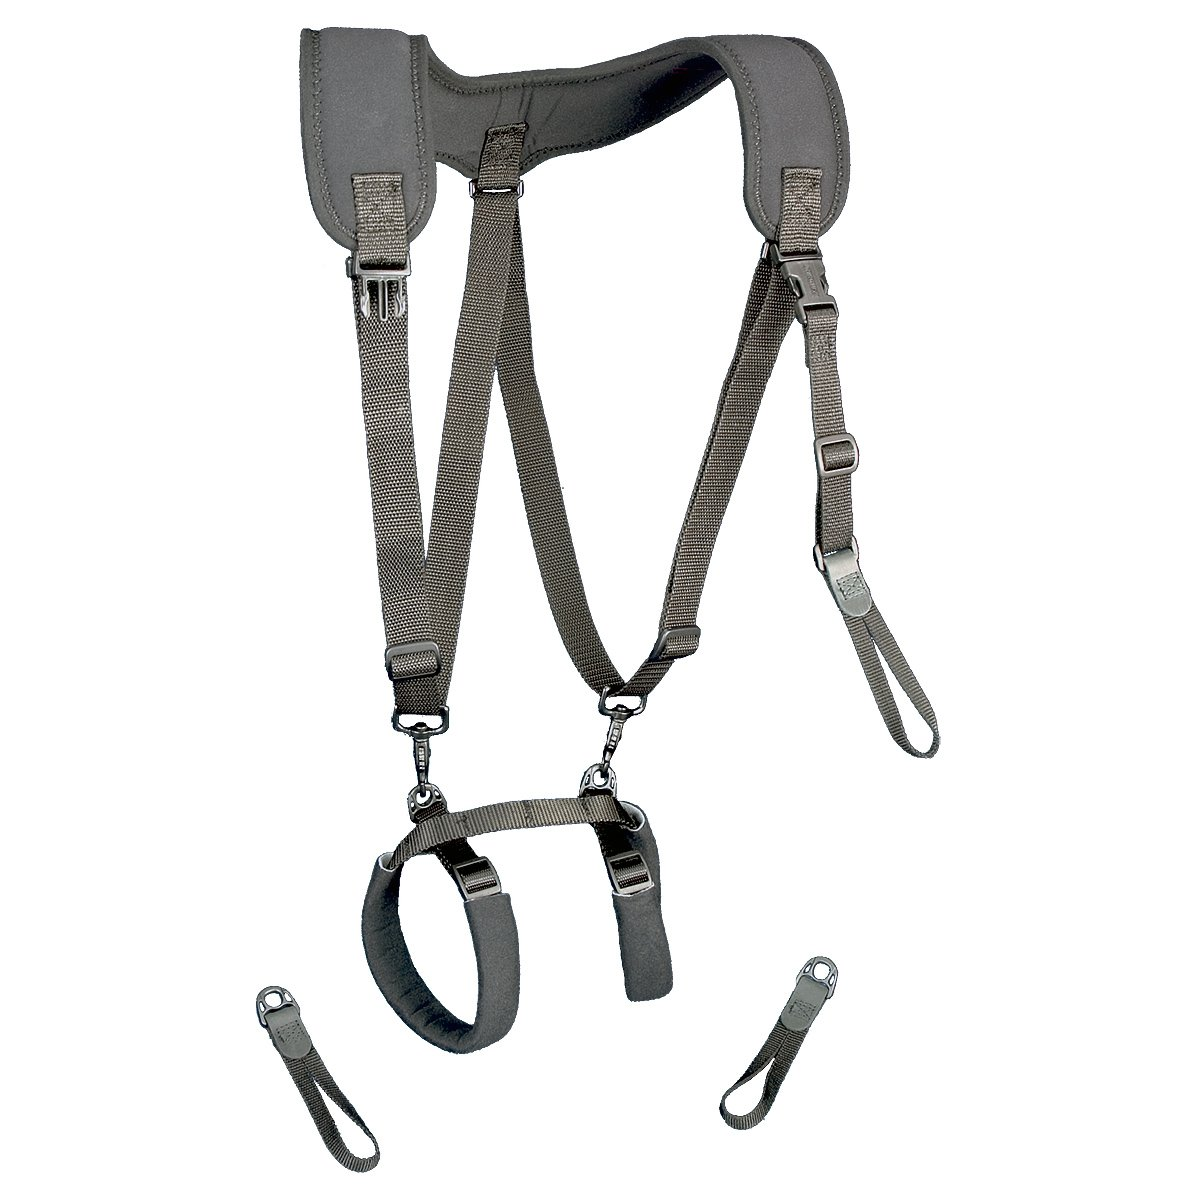 Neotech 5401142 Tuba Harness, X-Long, Black